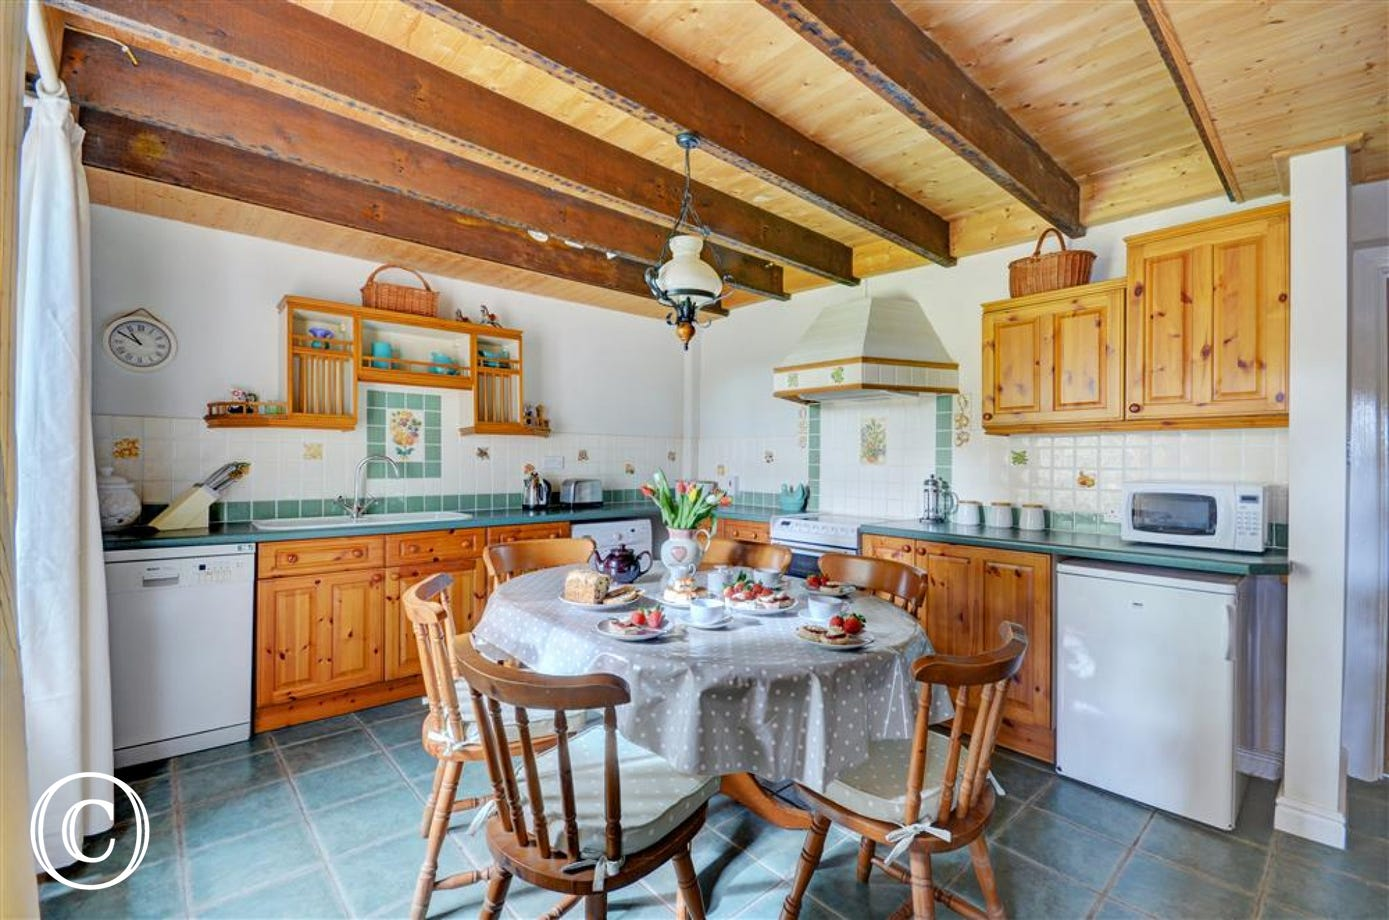 Traditional Cornish country kitchen with beamed ceiling